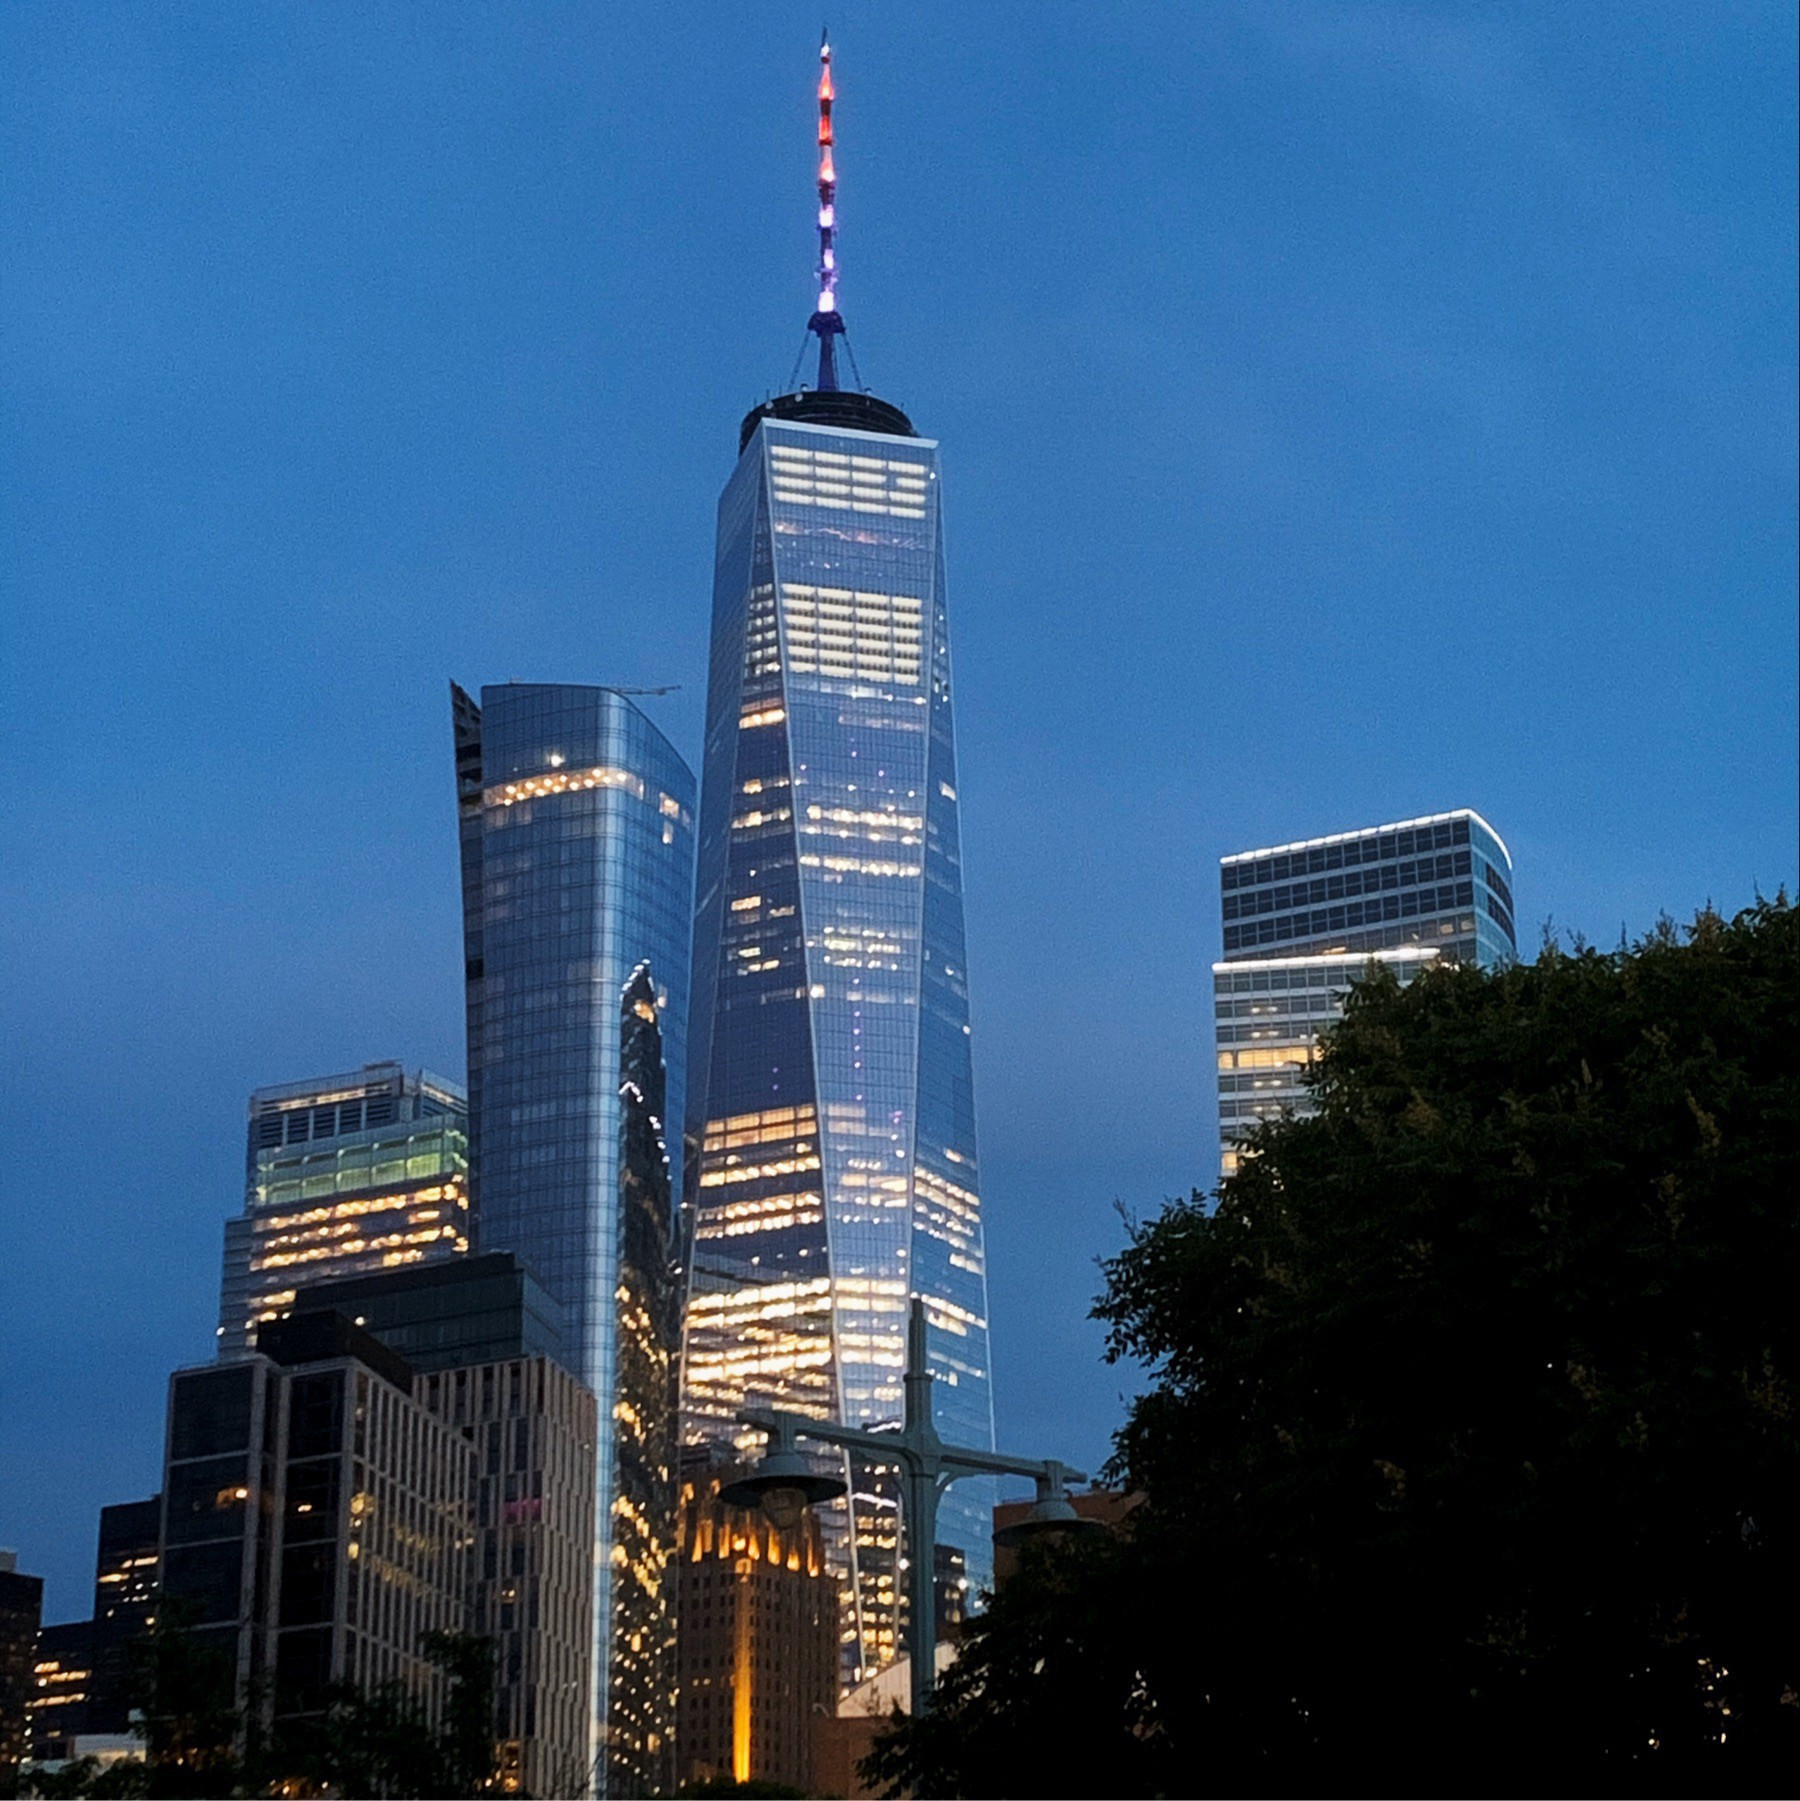 Evening view of One World Trade Center from north west.